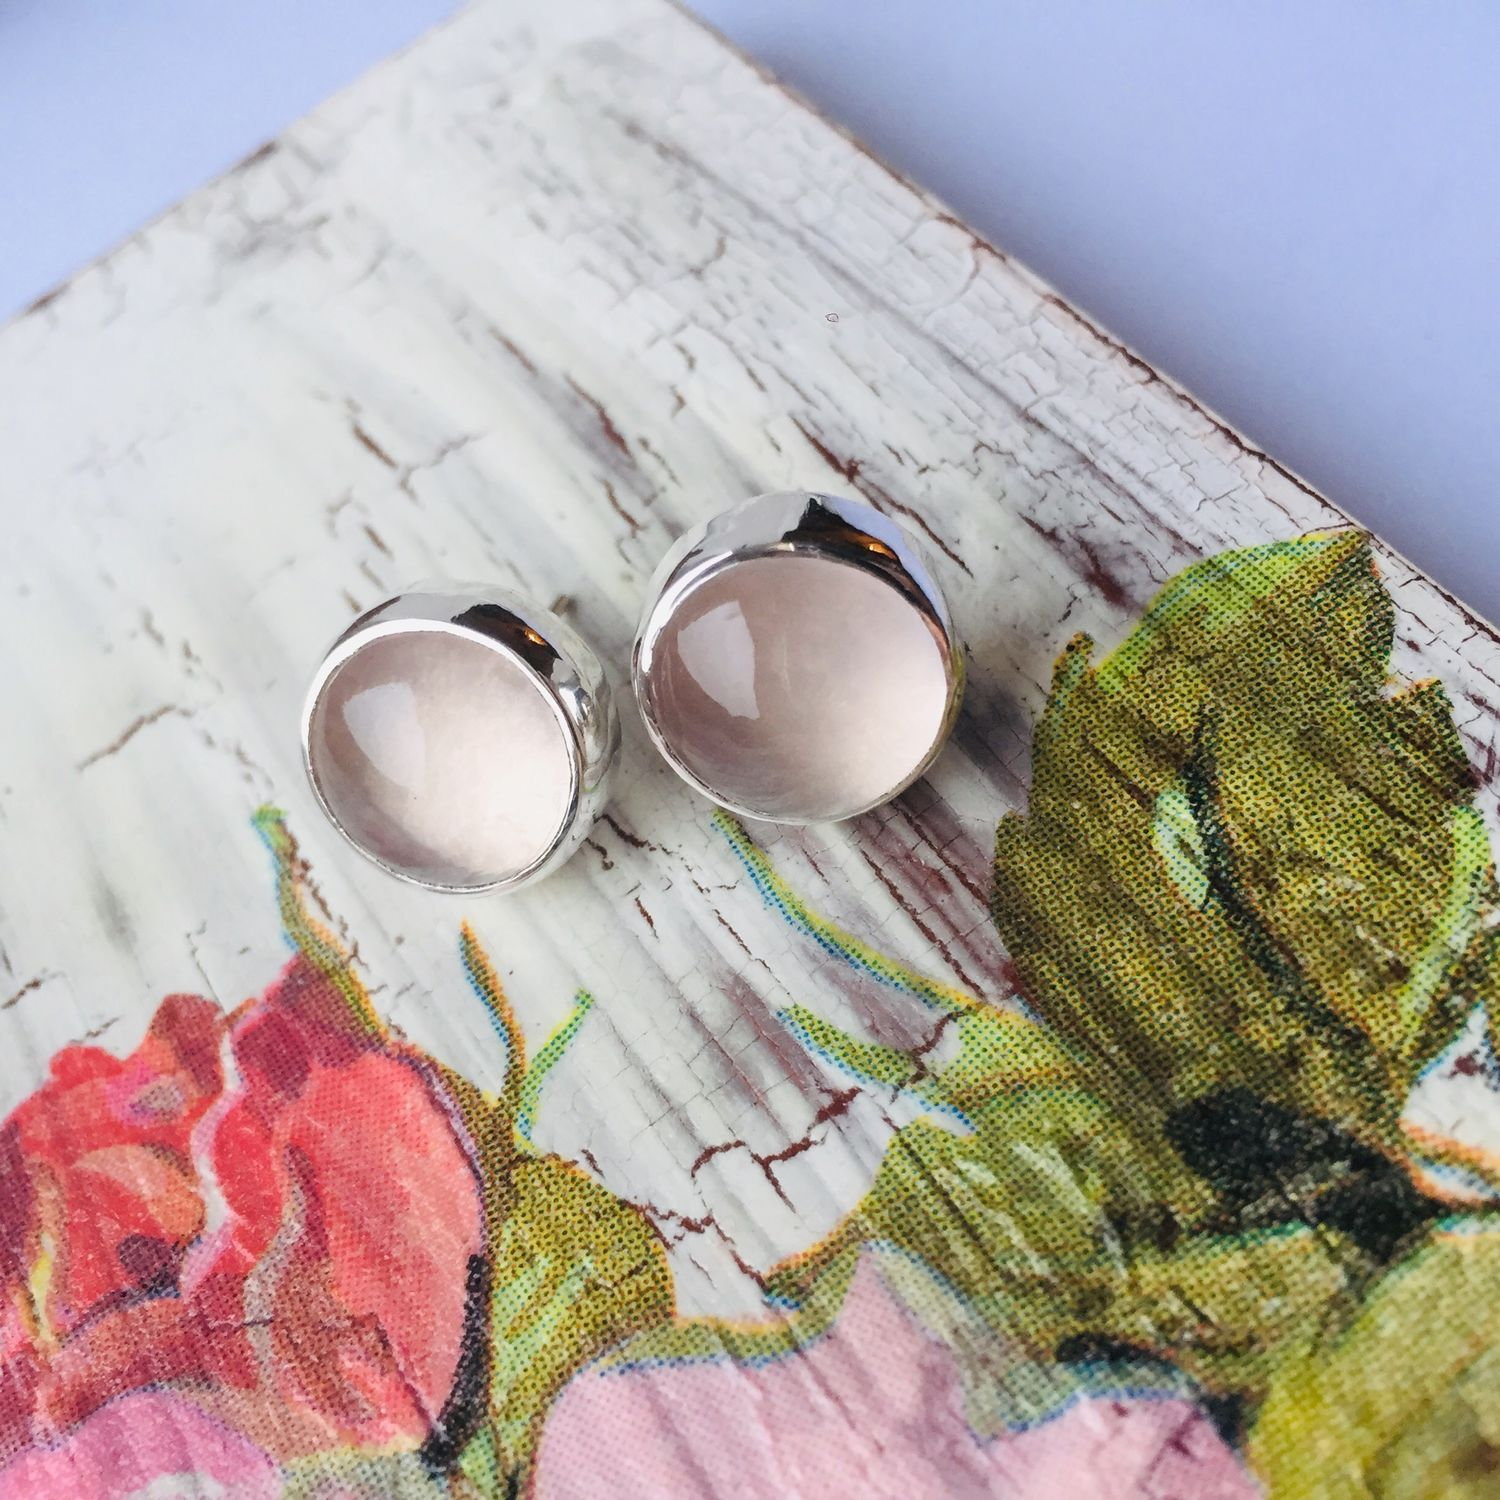 Carnations with rose quartz, Stud earrings, Moscow,  Фото №1